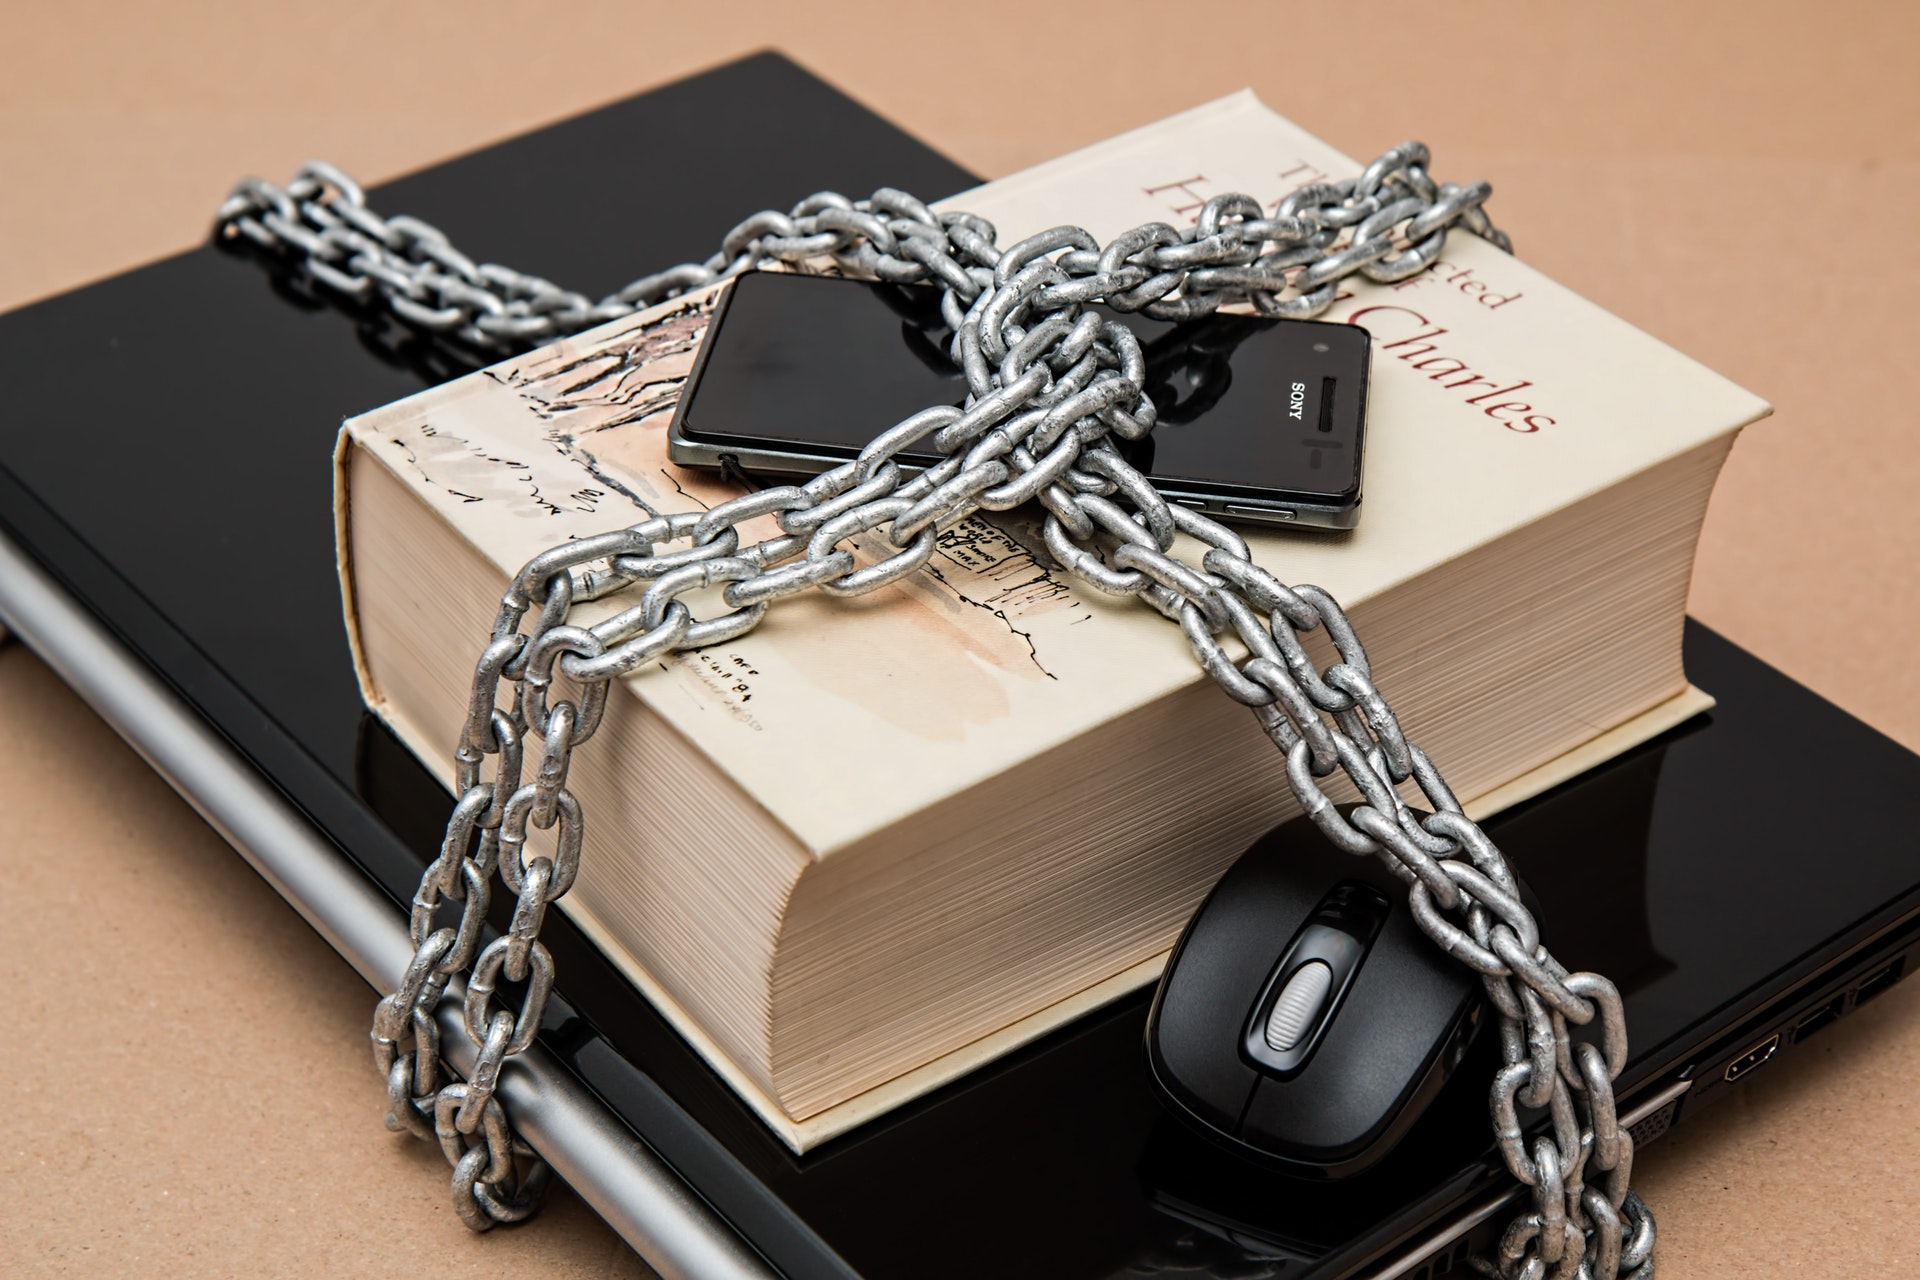 locked books and gadgets